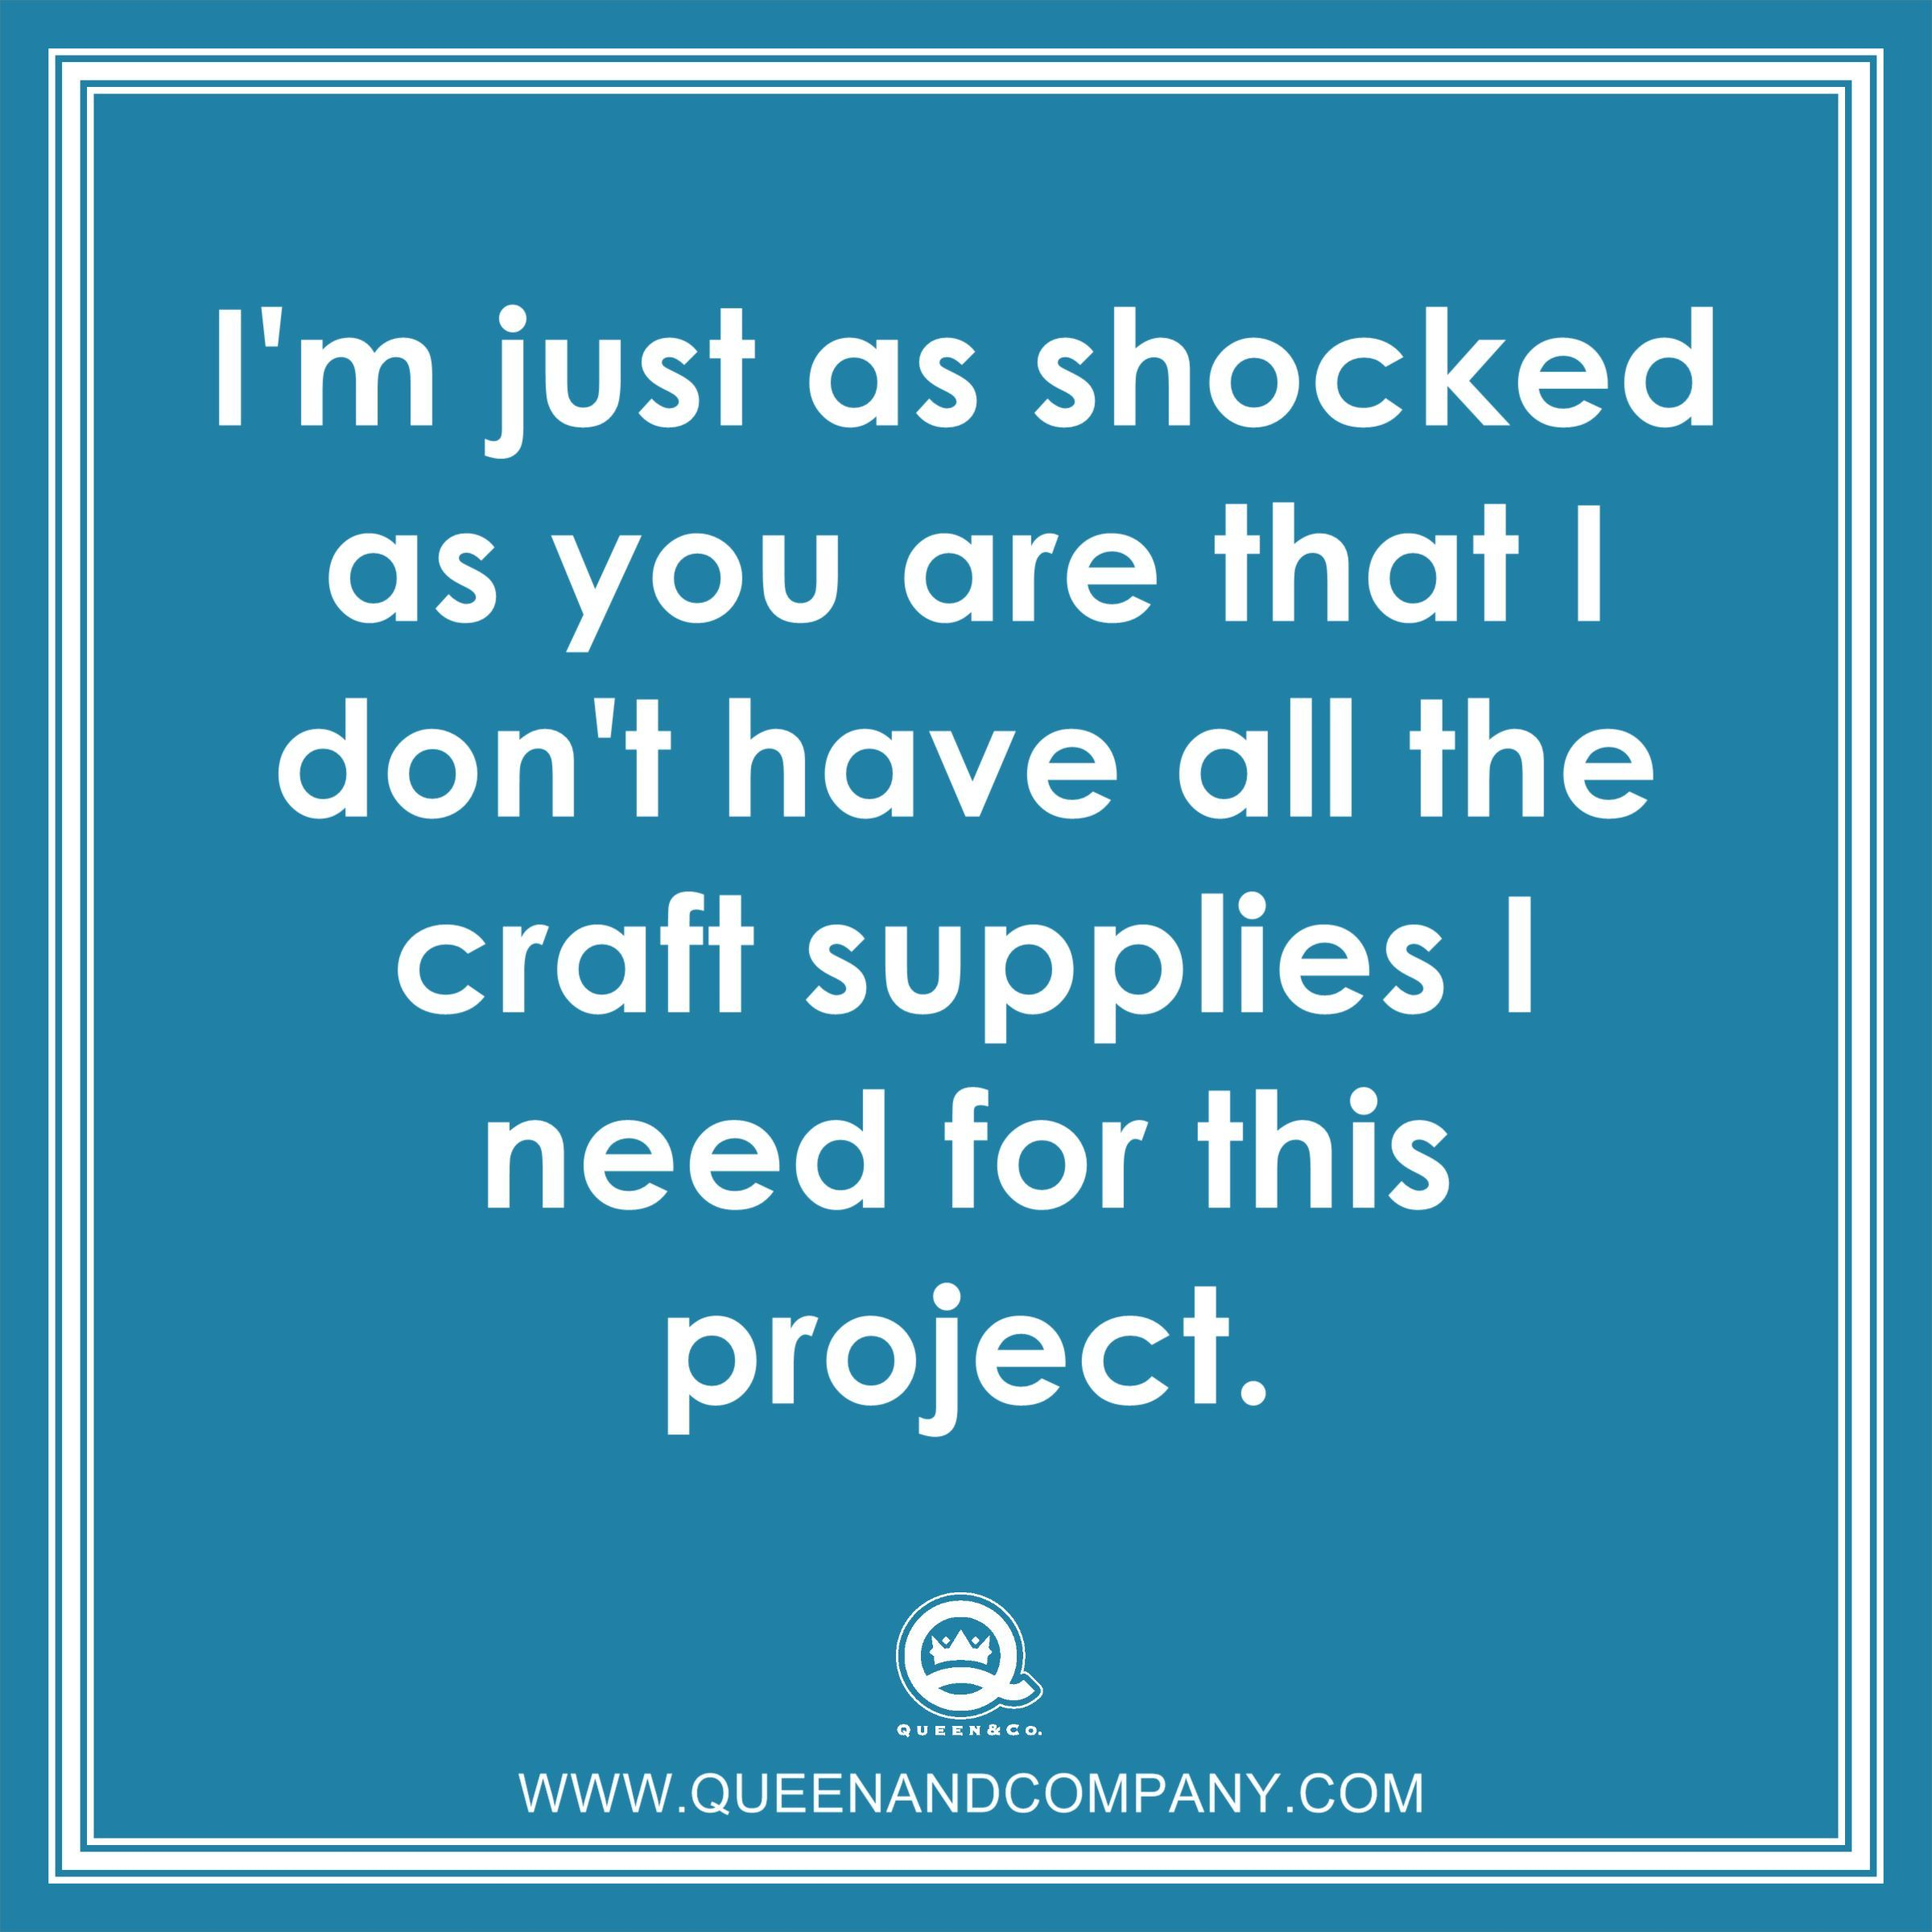 Crafting Meme Humor Joke After All These Years Shopping For Craft Supplies You D Think We D Have Everything We Nee Sewing Quotes Craft Quotes Knitting Humor